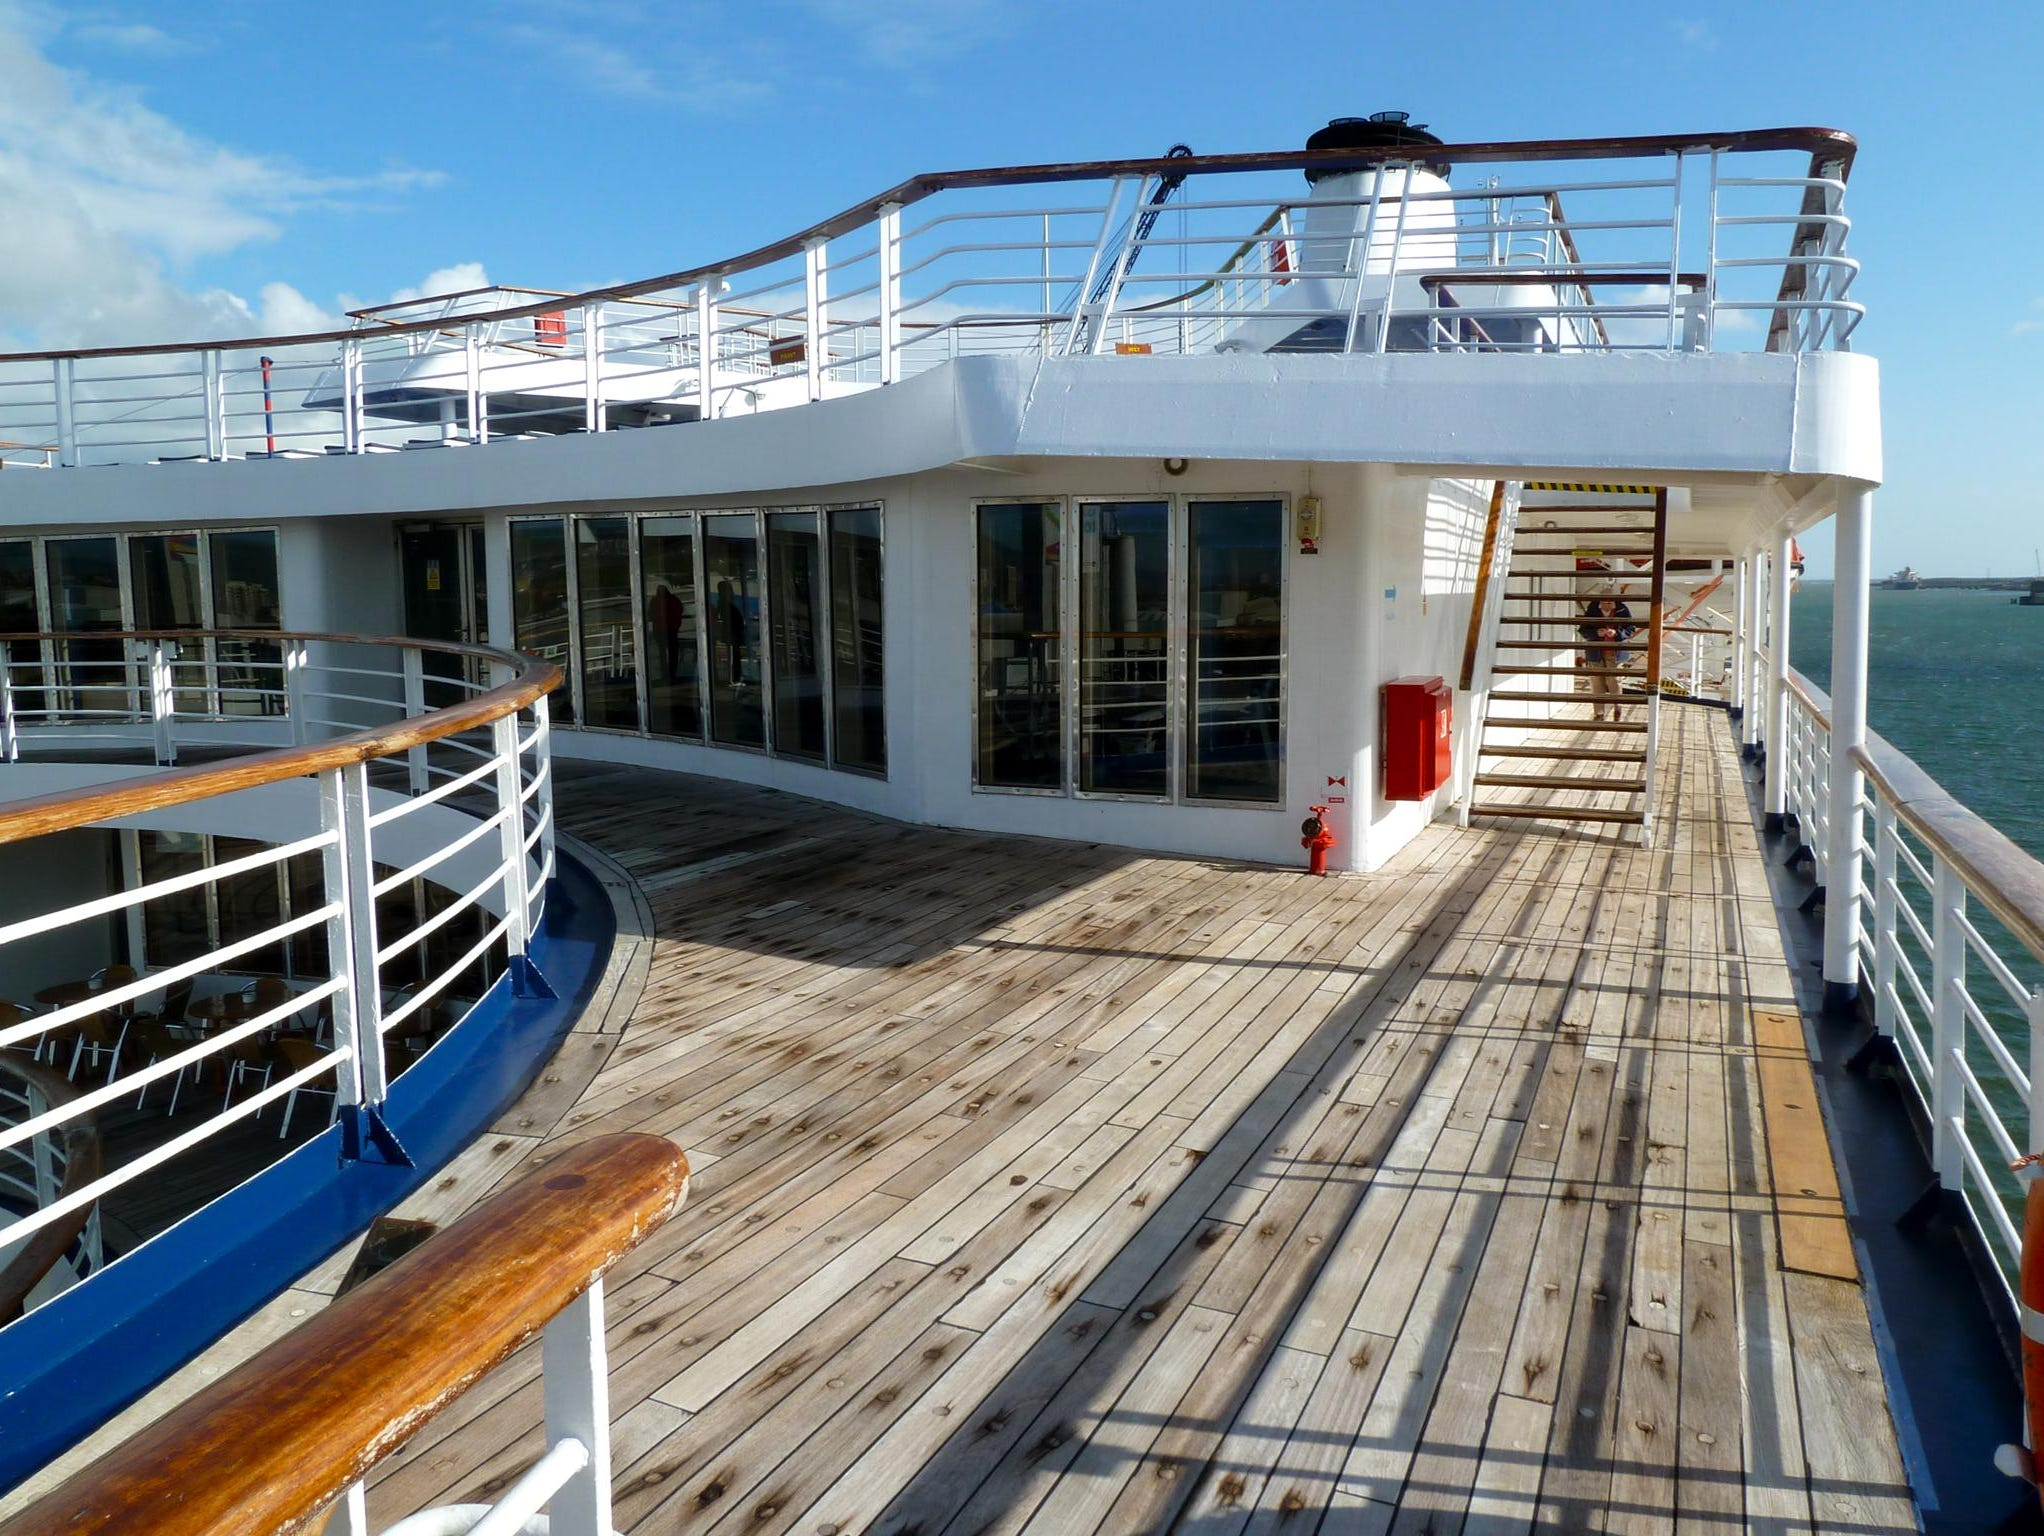 Marco Polo has beautifully-maintained teak decks, as seen here facing forward from the starboard Columbus Deck terrace.